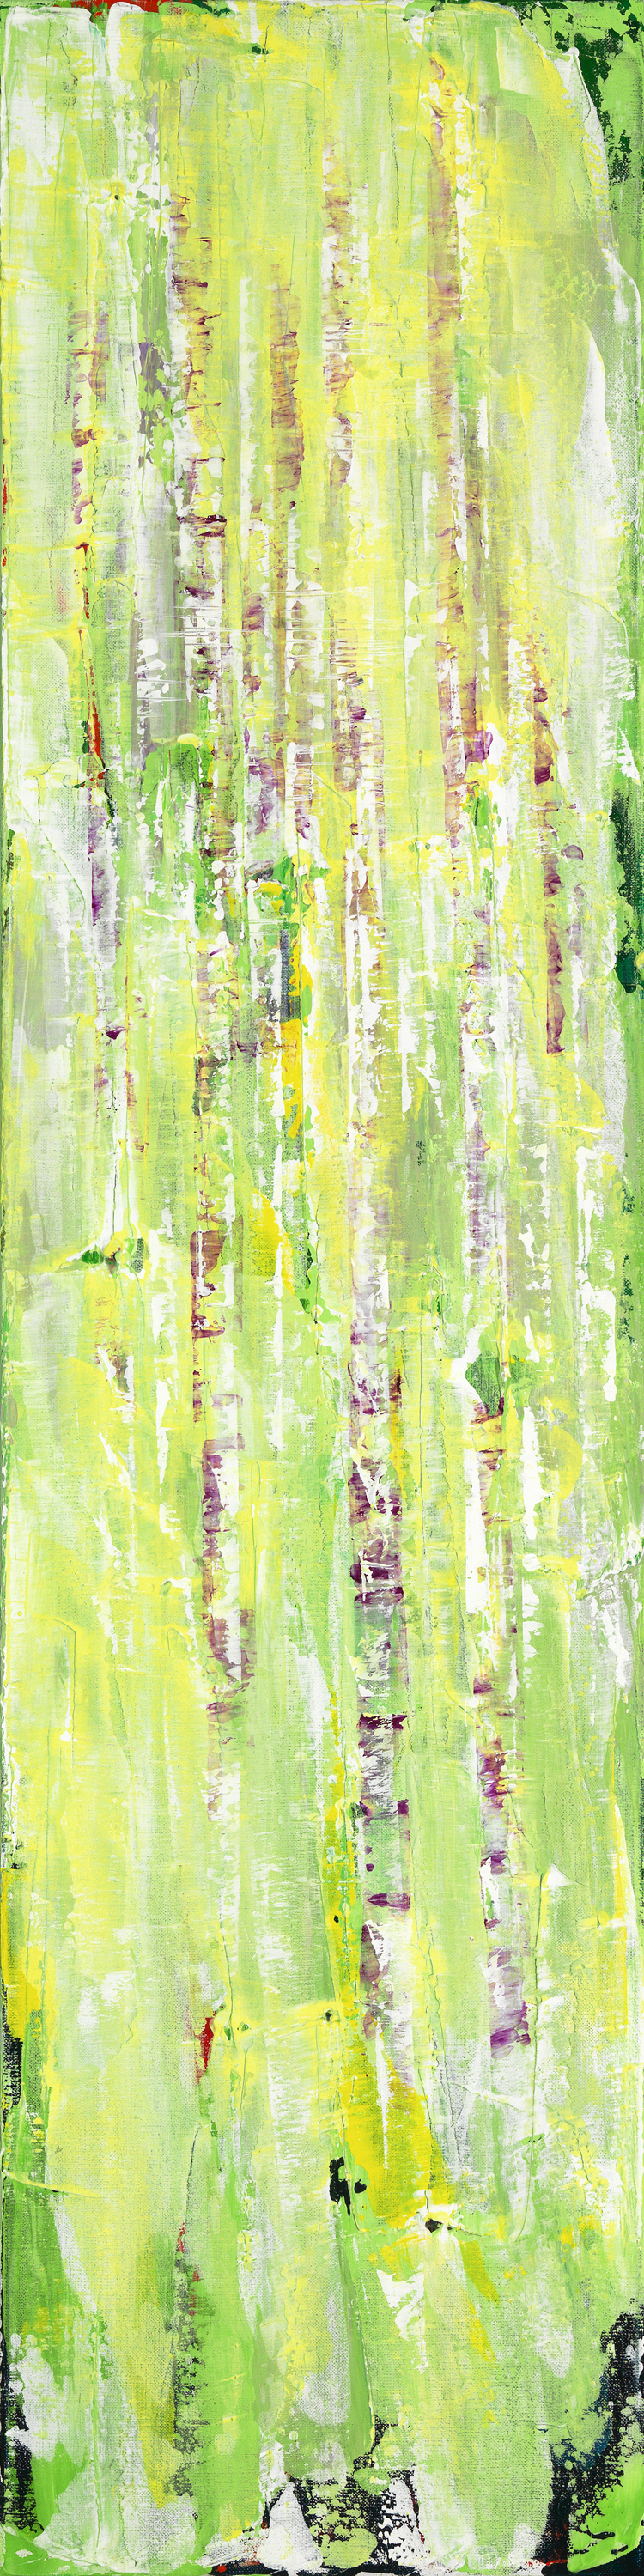 Untitled 022  12 x 48  Acrylic on Linen